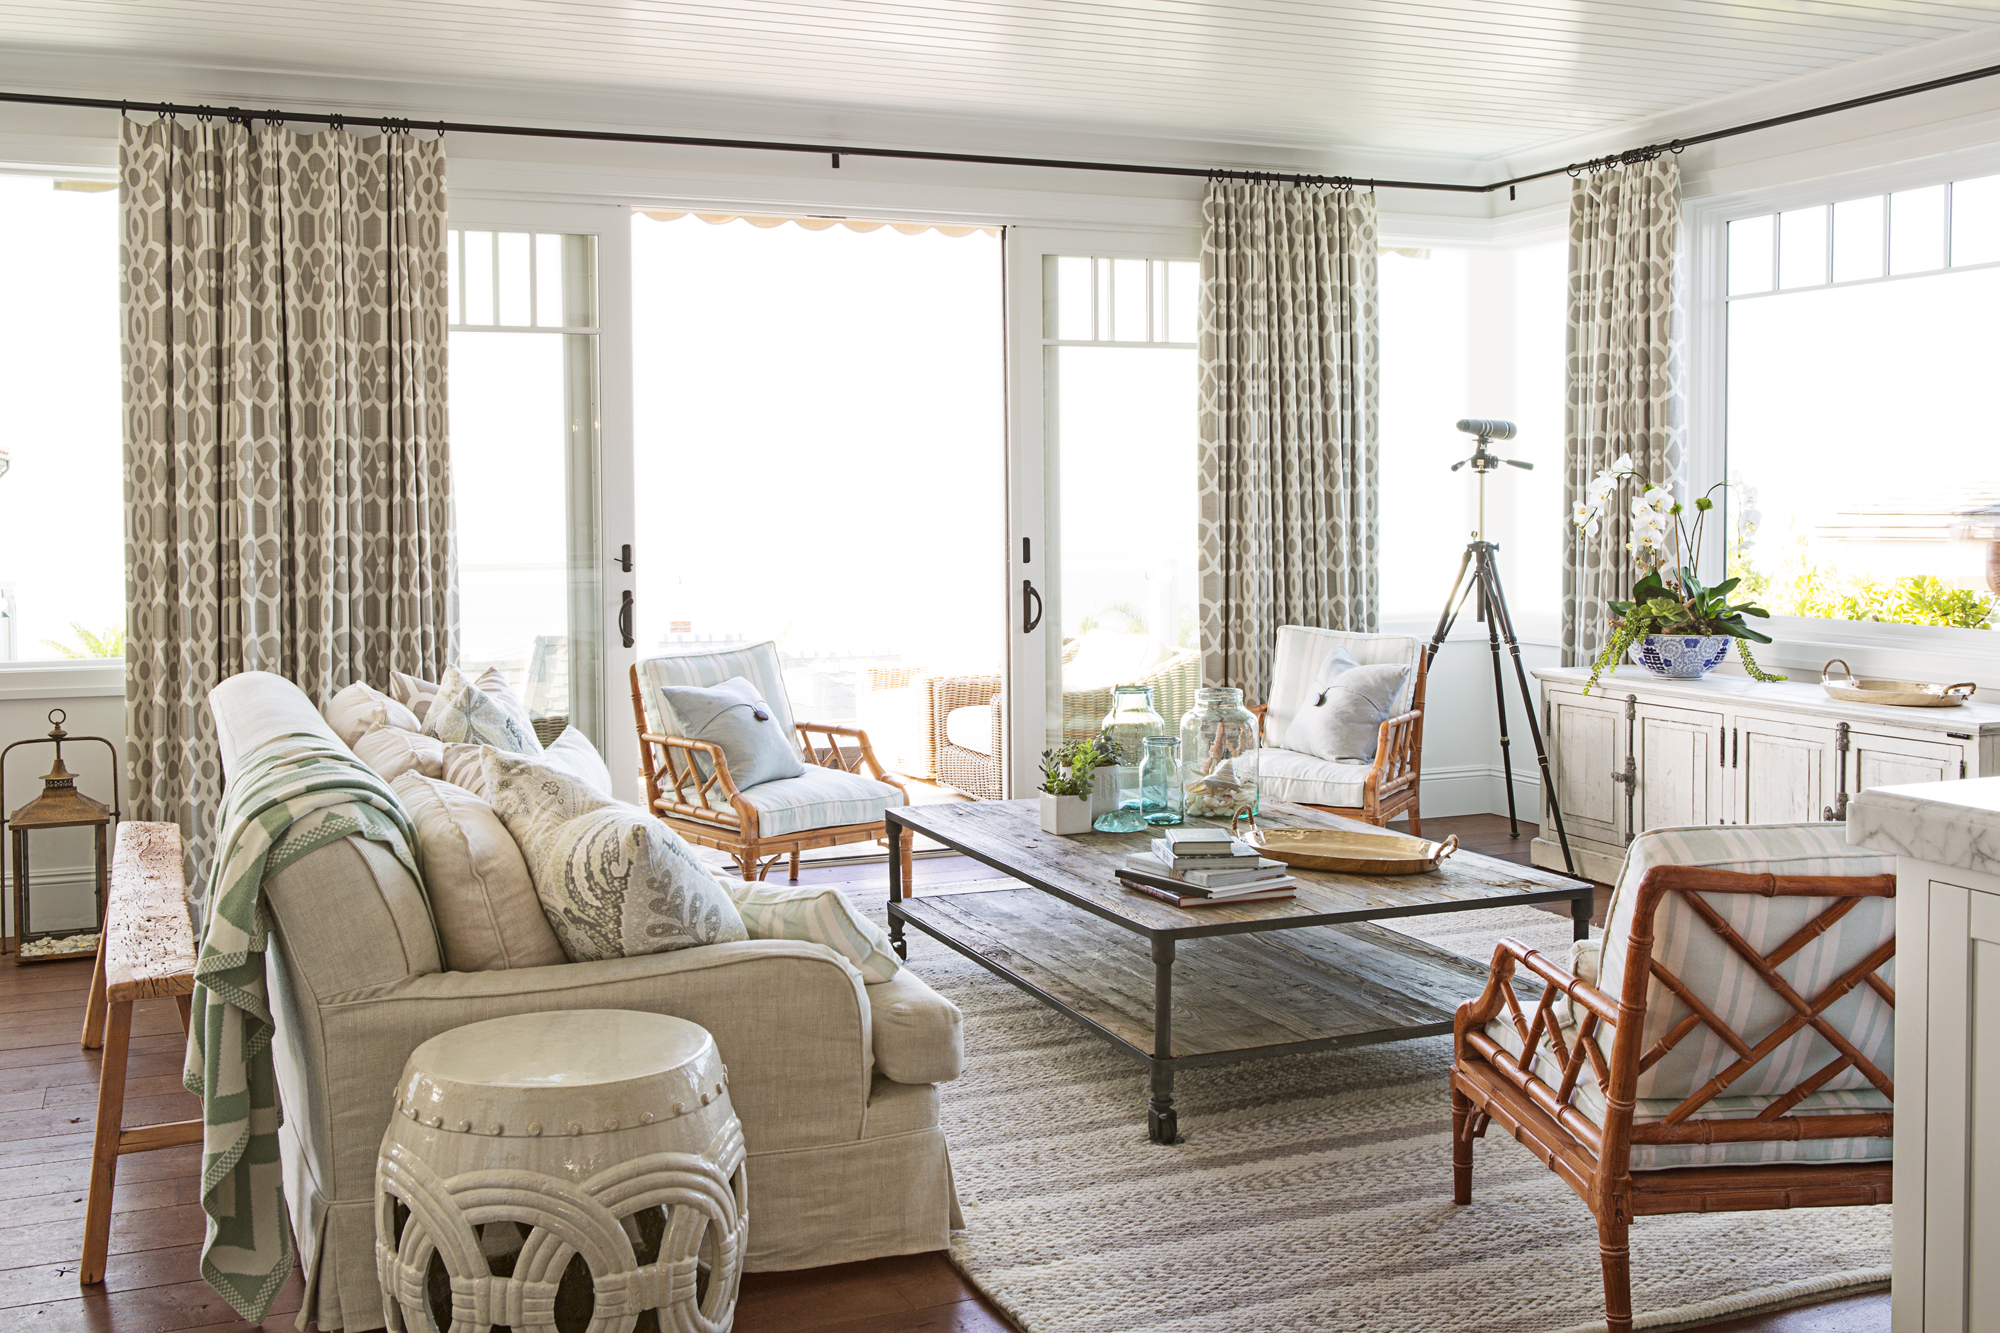 Excellent Beach House Style Coastal Decorating Tips And Tricks Largest Home Design Picture Inspirations Pitcheantrous